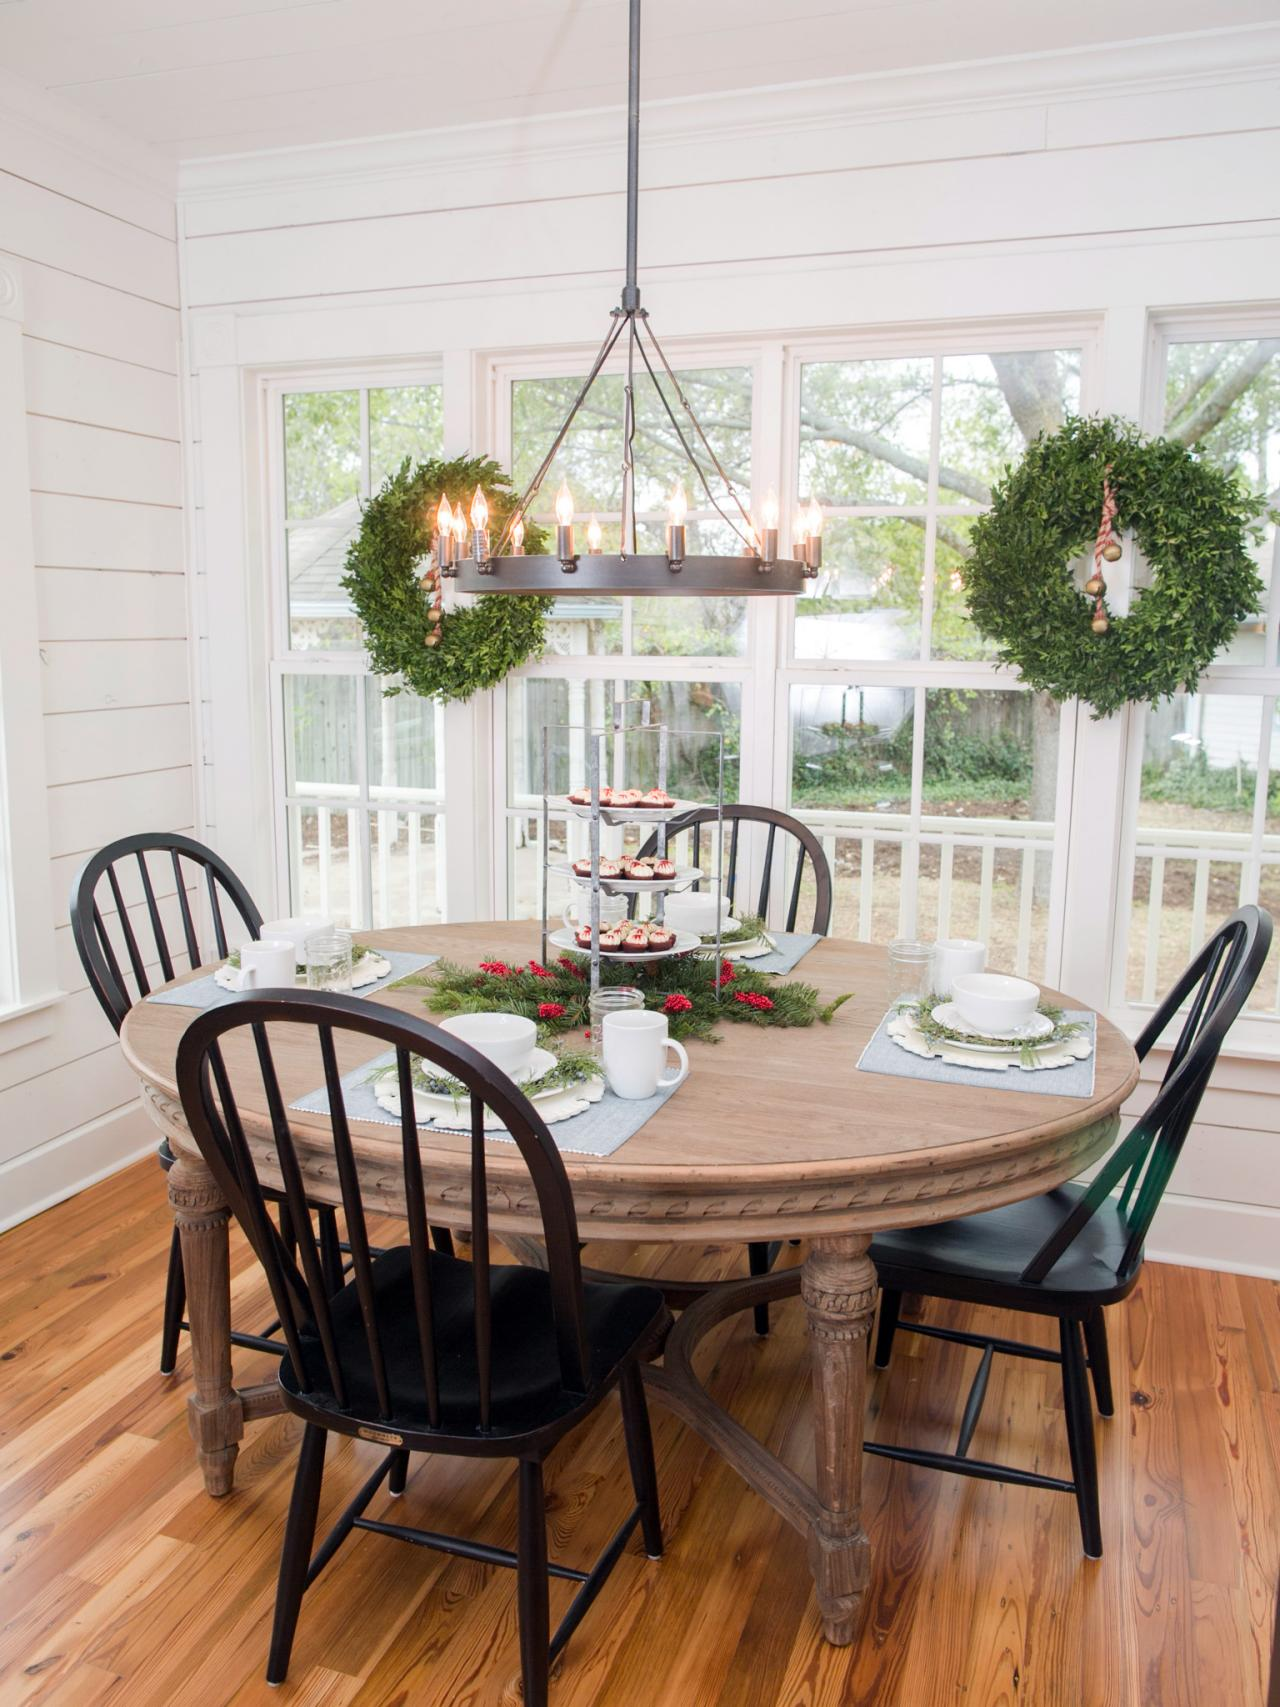 Fixer upper 39 s dreamiest breakfast nooks hgtv 39 s Breakfast nook bar ideas